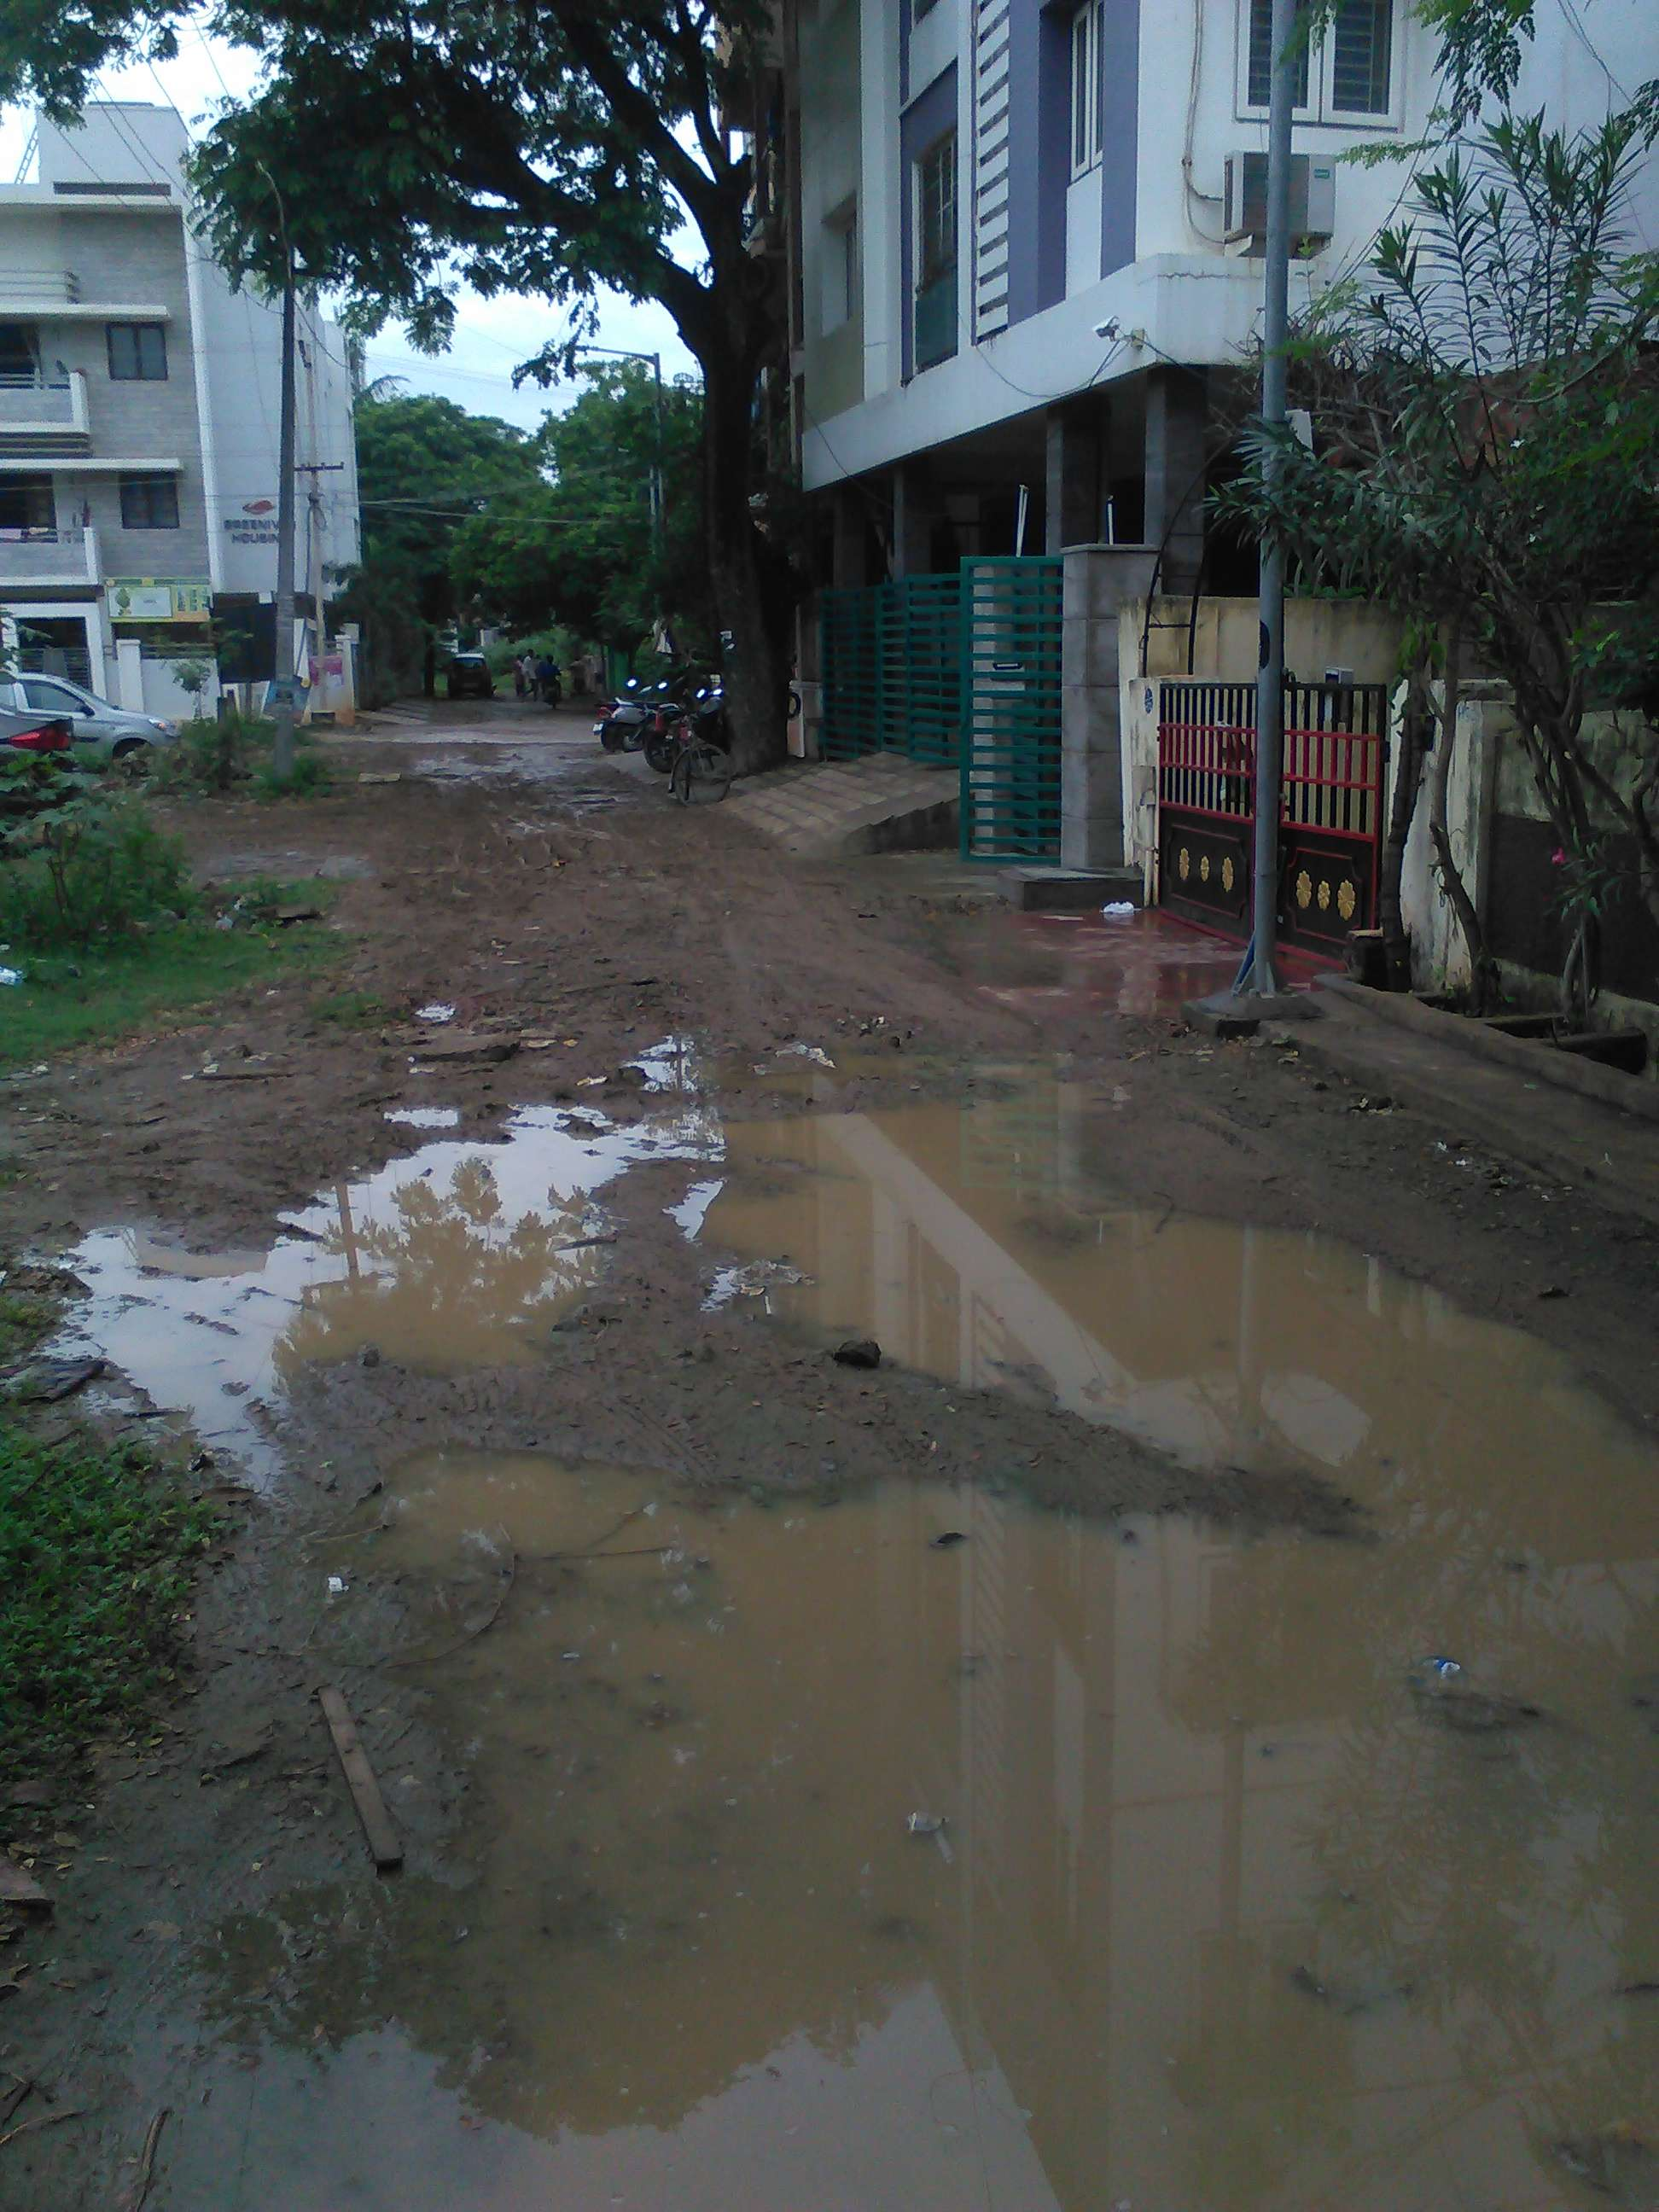 report on bad condition of roads in the city